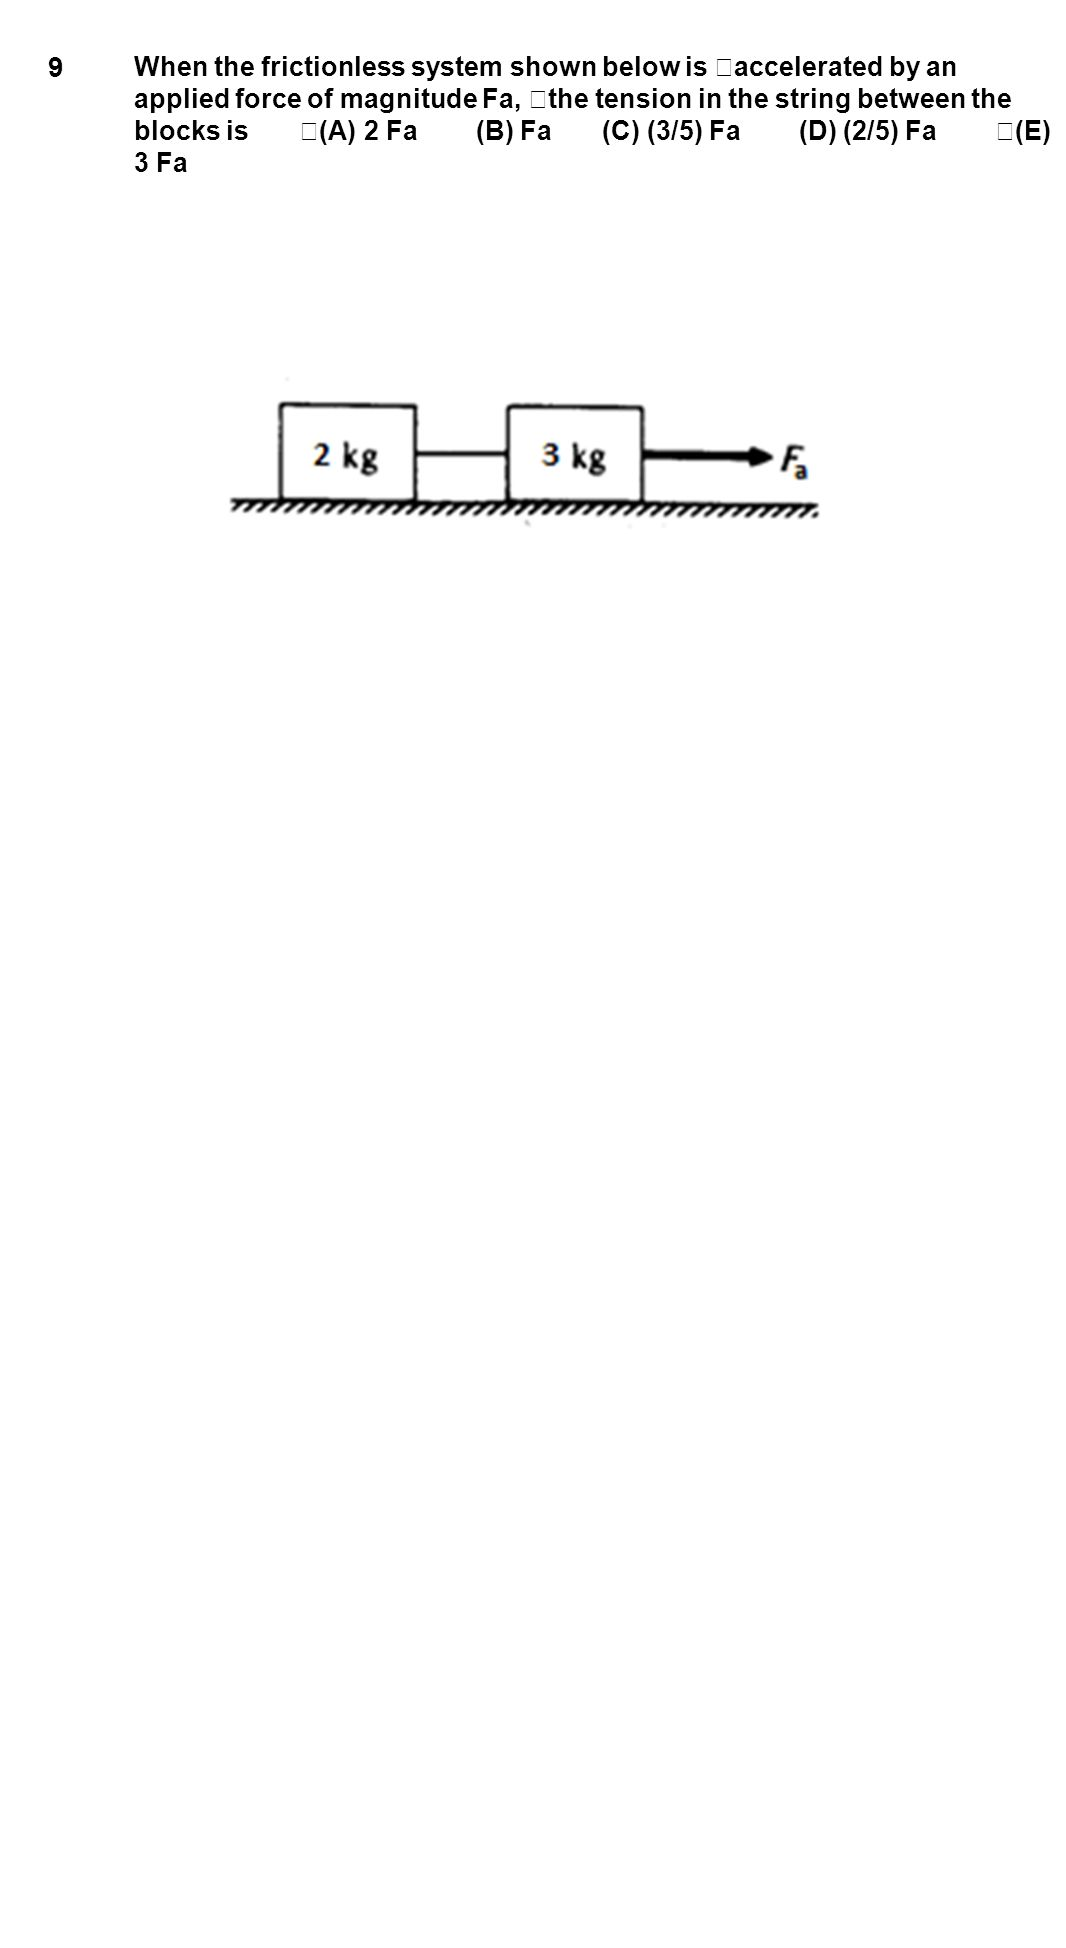 9 When the frictionless system shown below is accelerated by an applied force of magnitude Fa, the tension in the string between the blocks is (A) 2 F